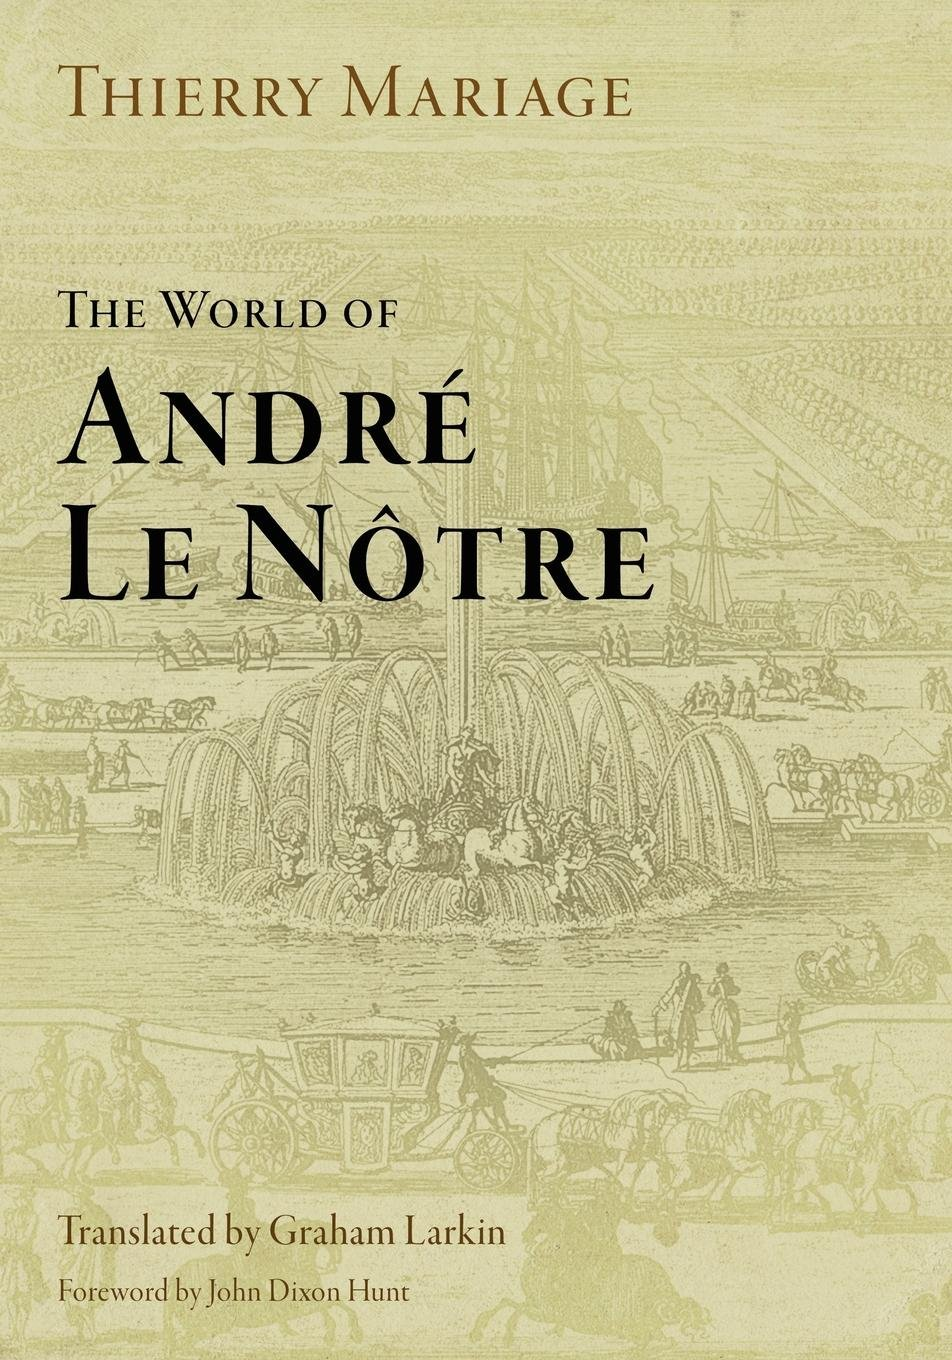 Download The World of Andre Le Notre (Penn Studies in Landscape Architecture) ebook